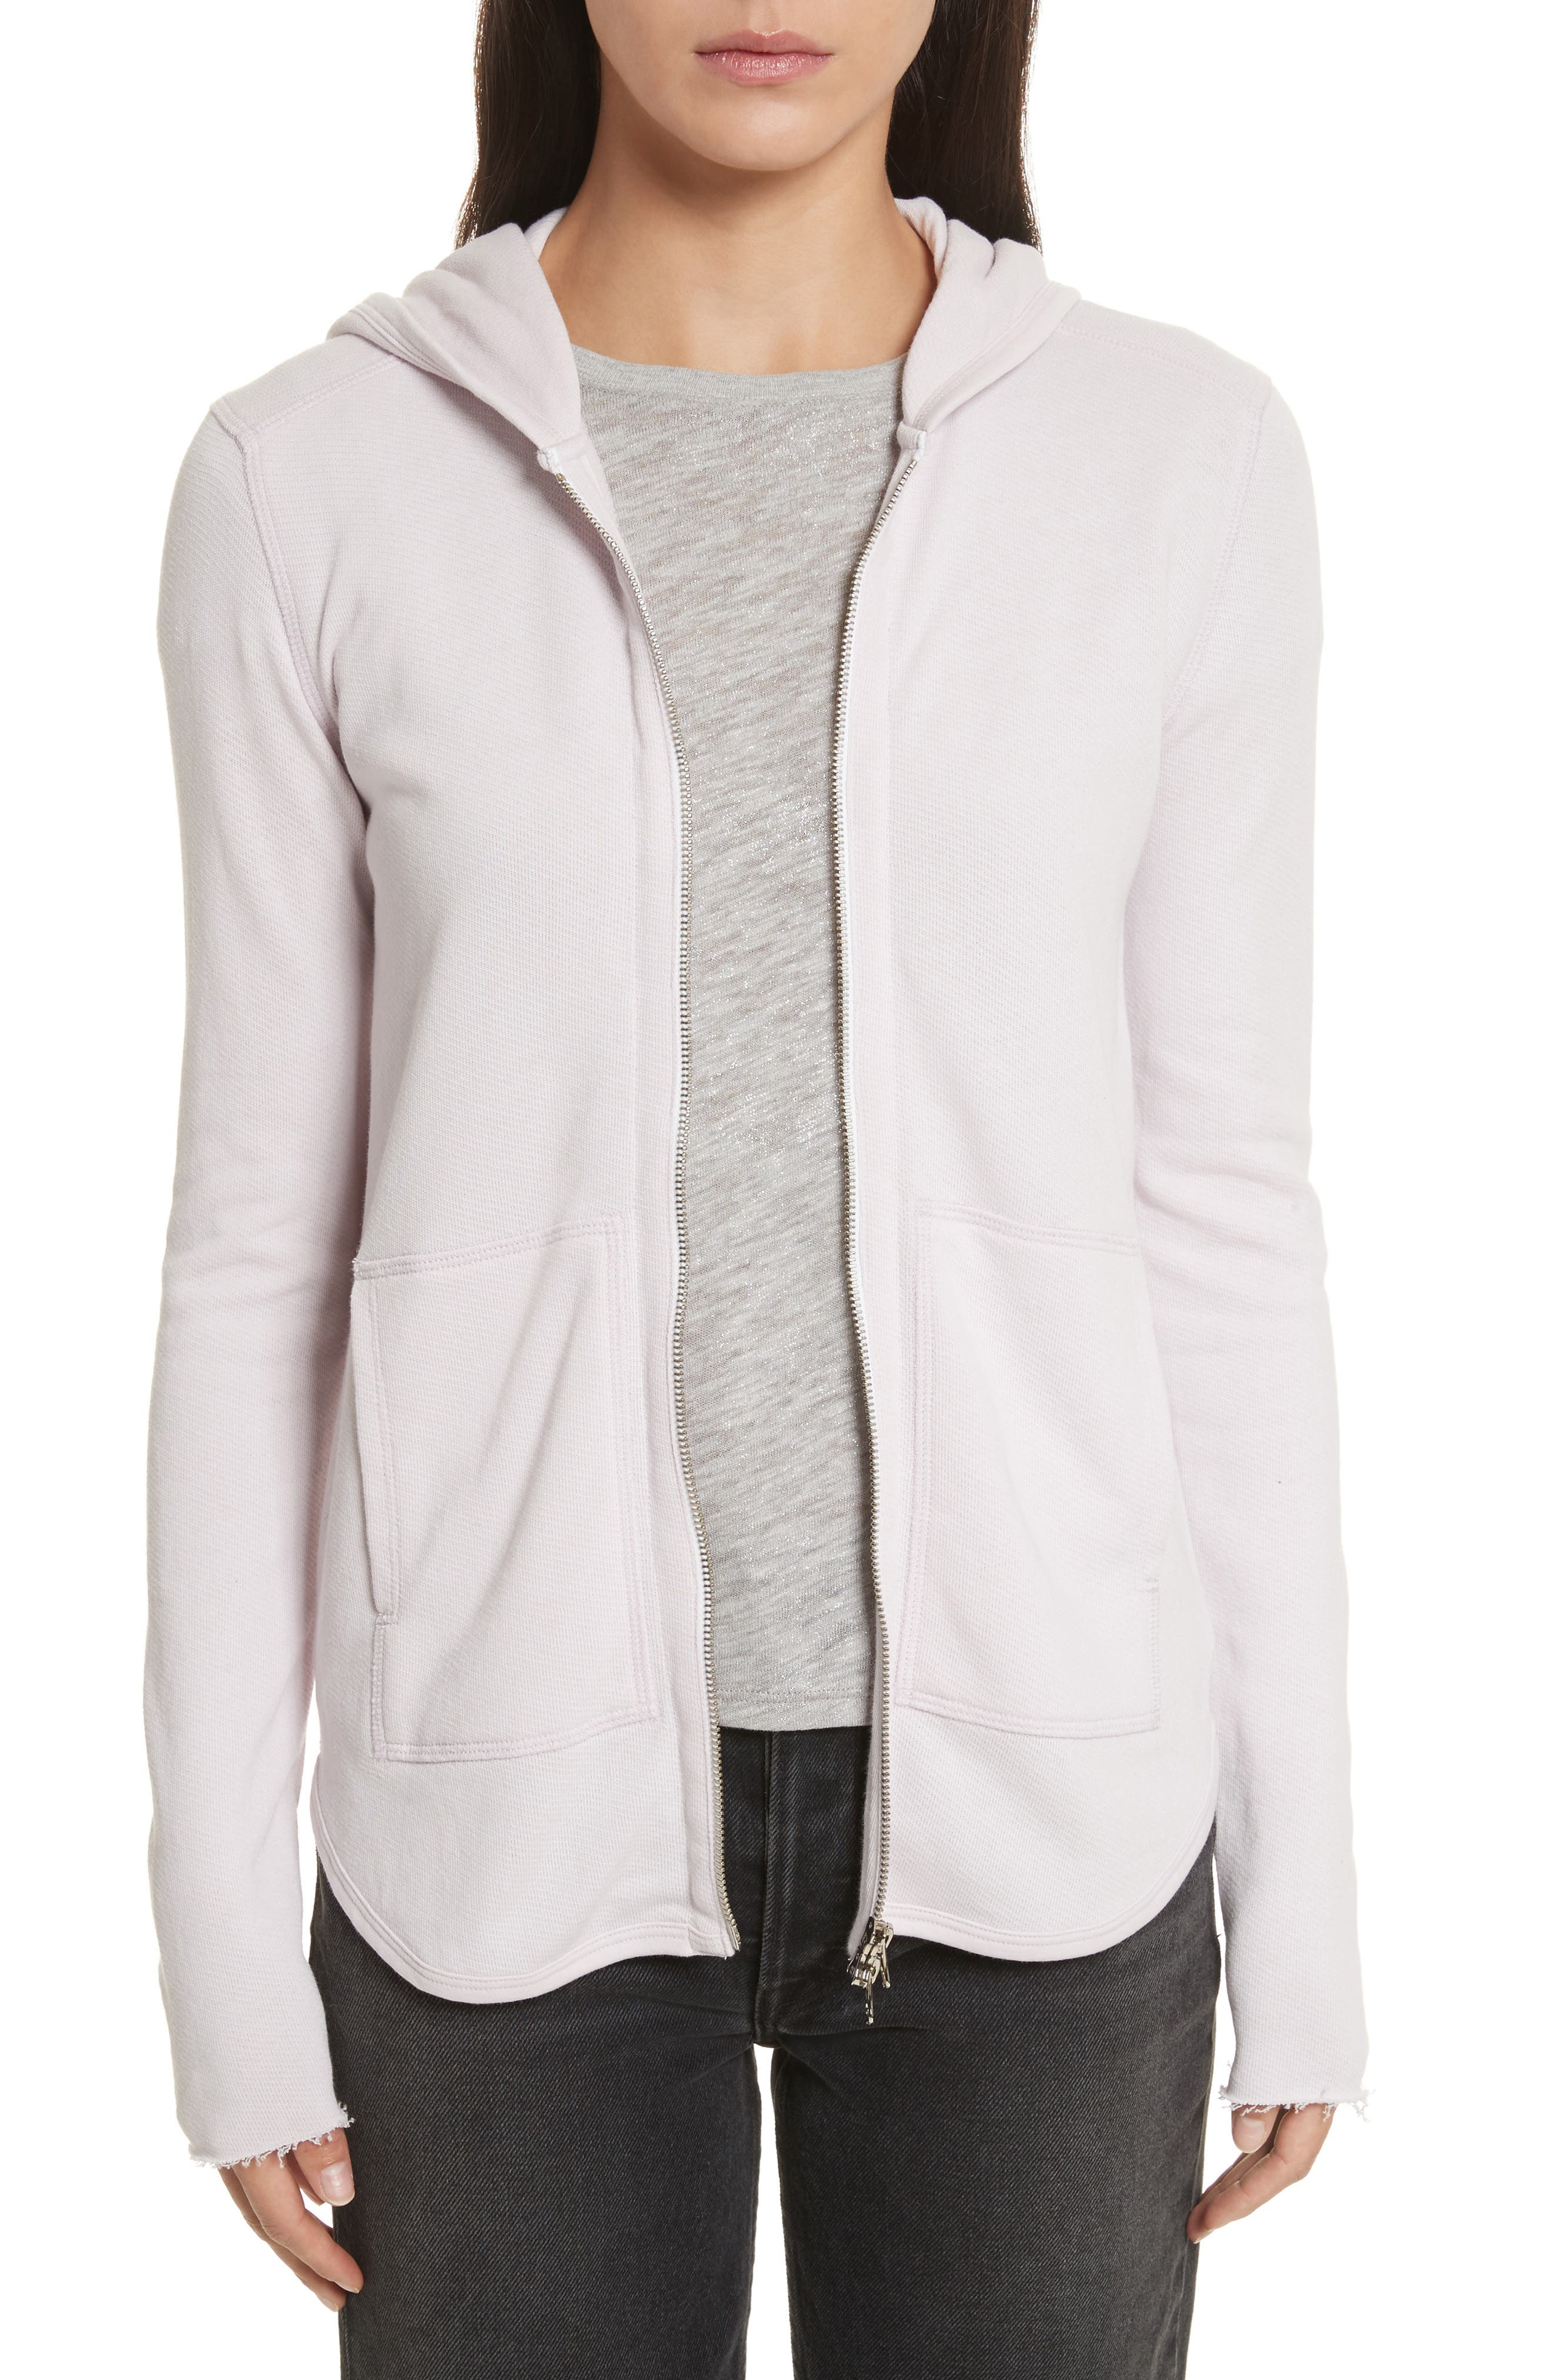 Alternate Image 1 Selected - ATM Anthony Thomas Melillo Front Zip Hoodie (Nordstrom Exclusive)